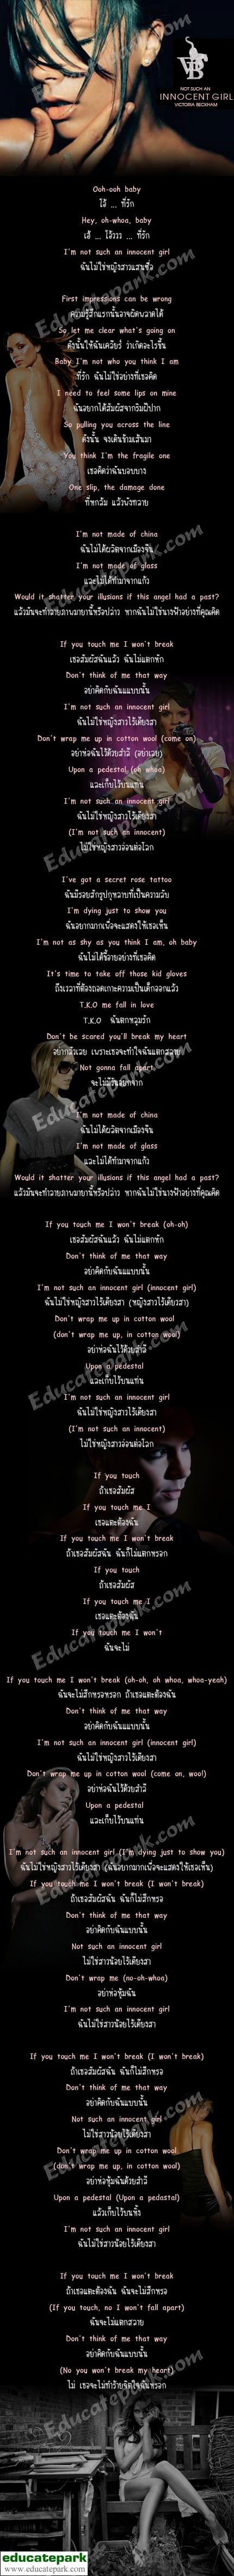 แปลเพลง Not Such an Innocent Girl - Victoria Beckham